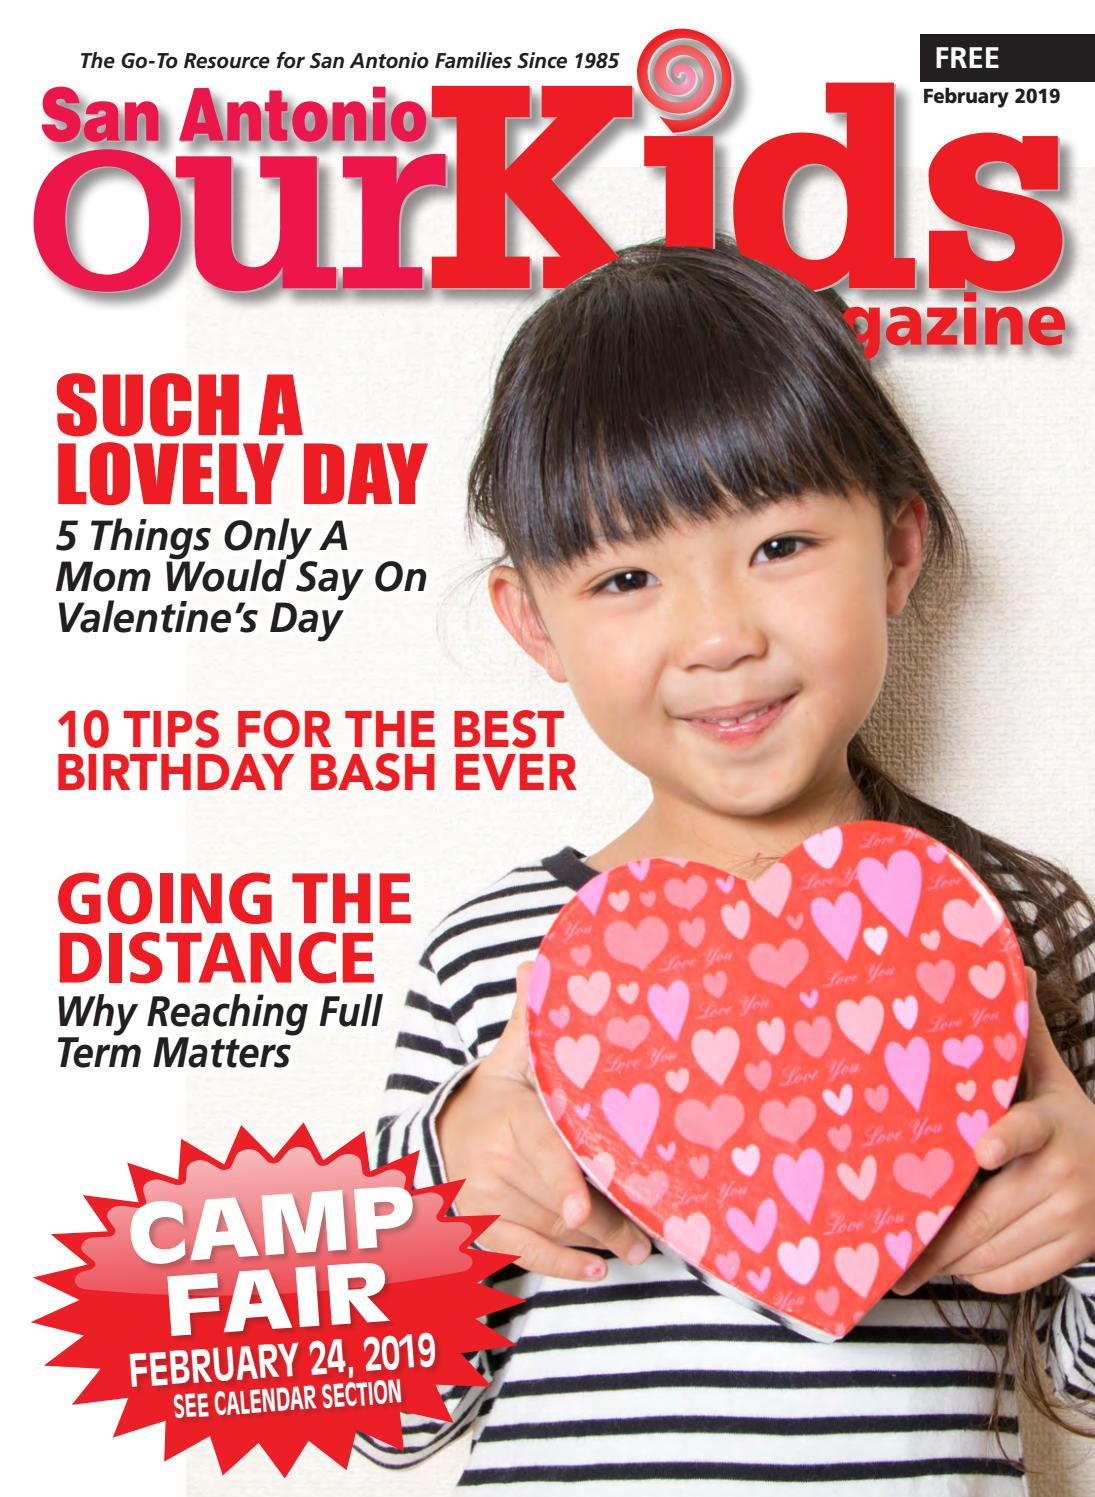 Our_Kids_Magazine_February_2019 by Our Kids Magazine - issuu